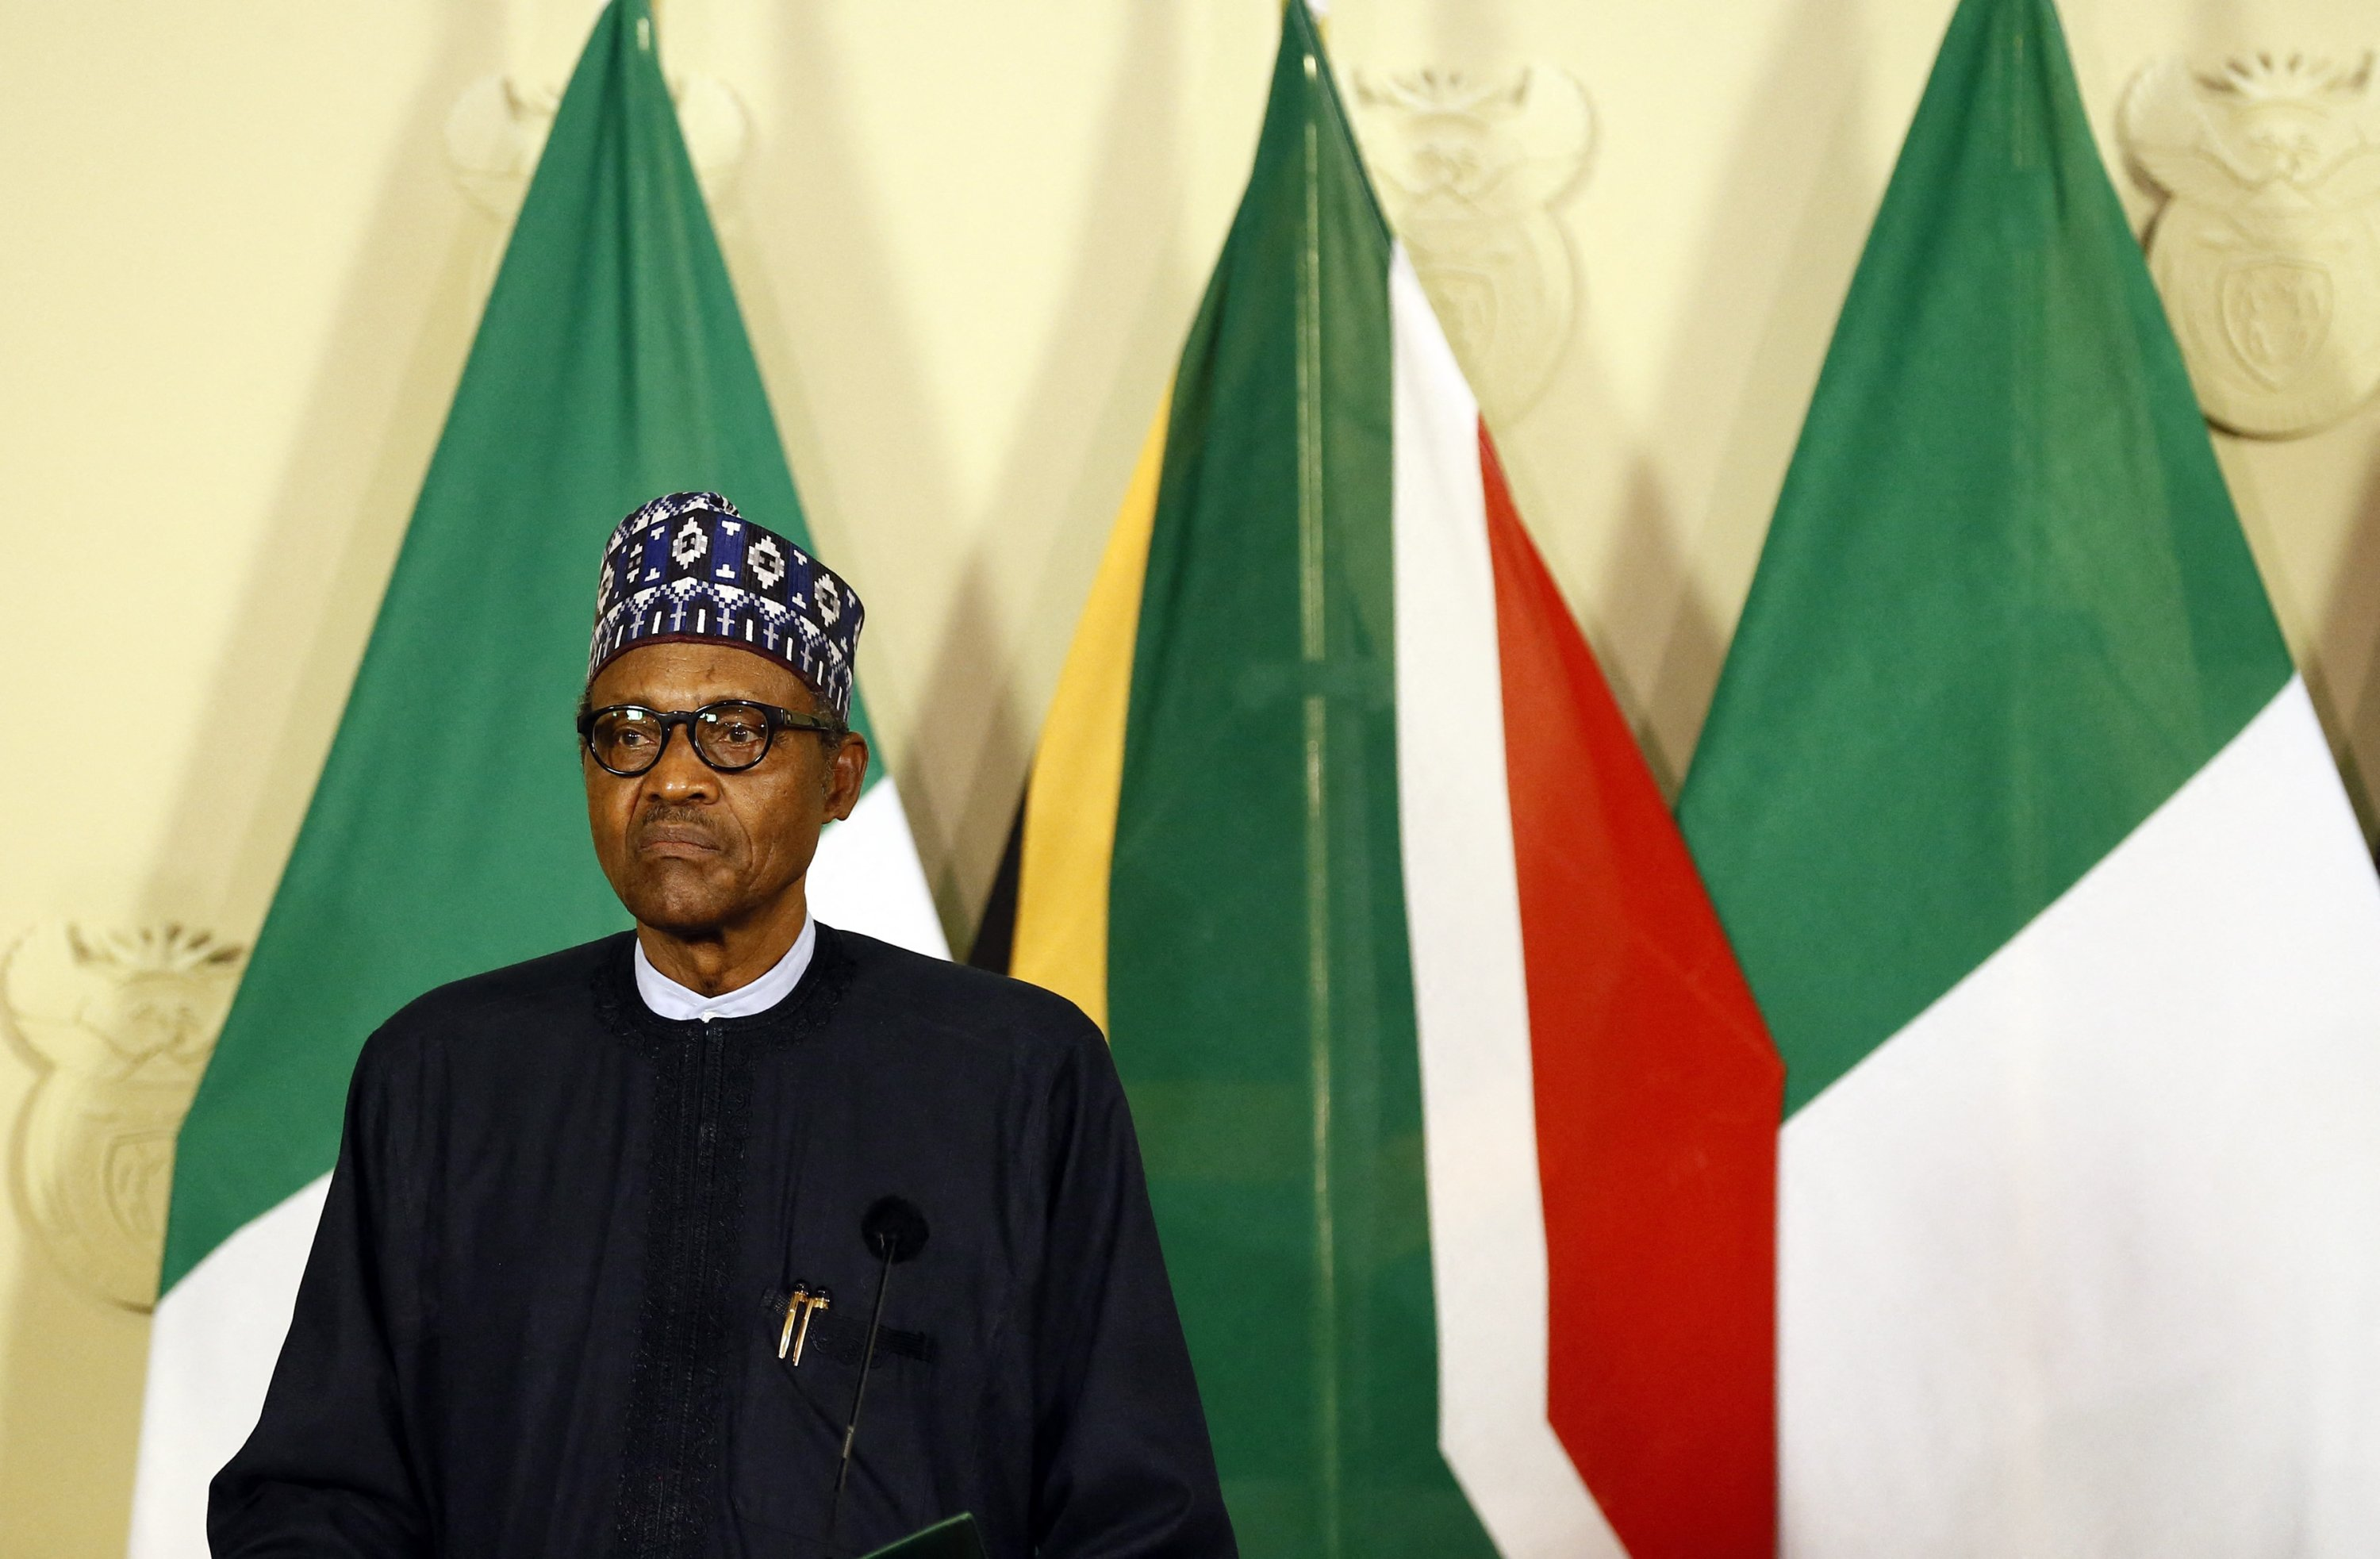 Nigeria's President Muhammadu Buhari looks on while giving a press conference during his official state visit at Union Buildings in Pretoria, South Africa, Oct. 03, 2019. (Photo by Phill Magakoe / AFP)